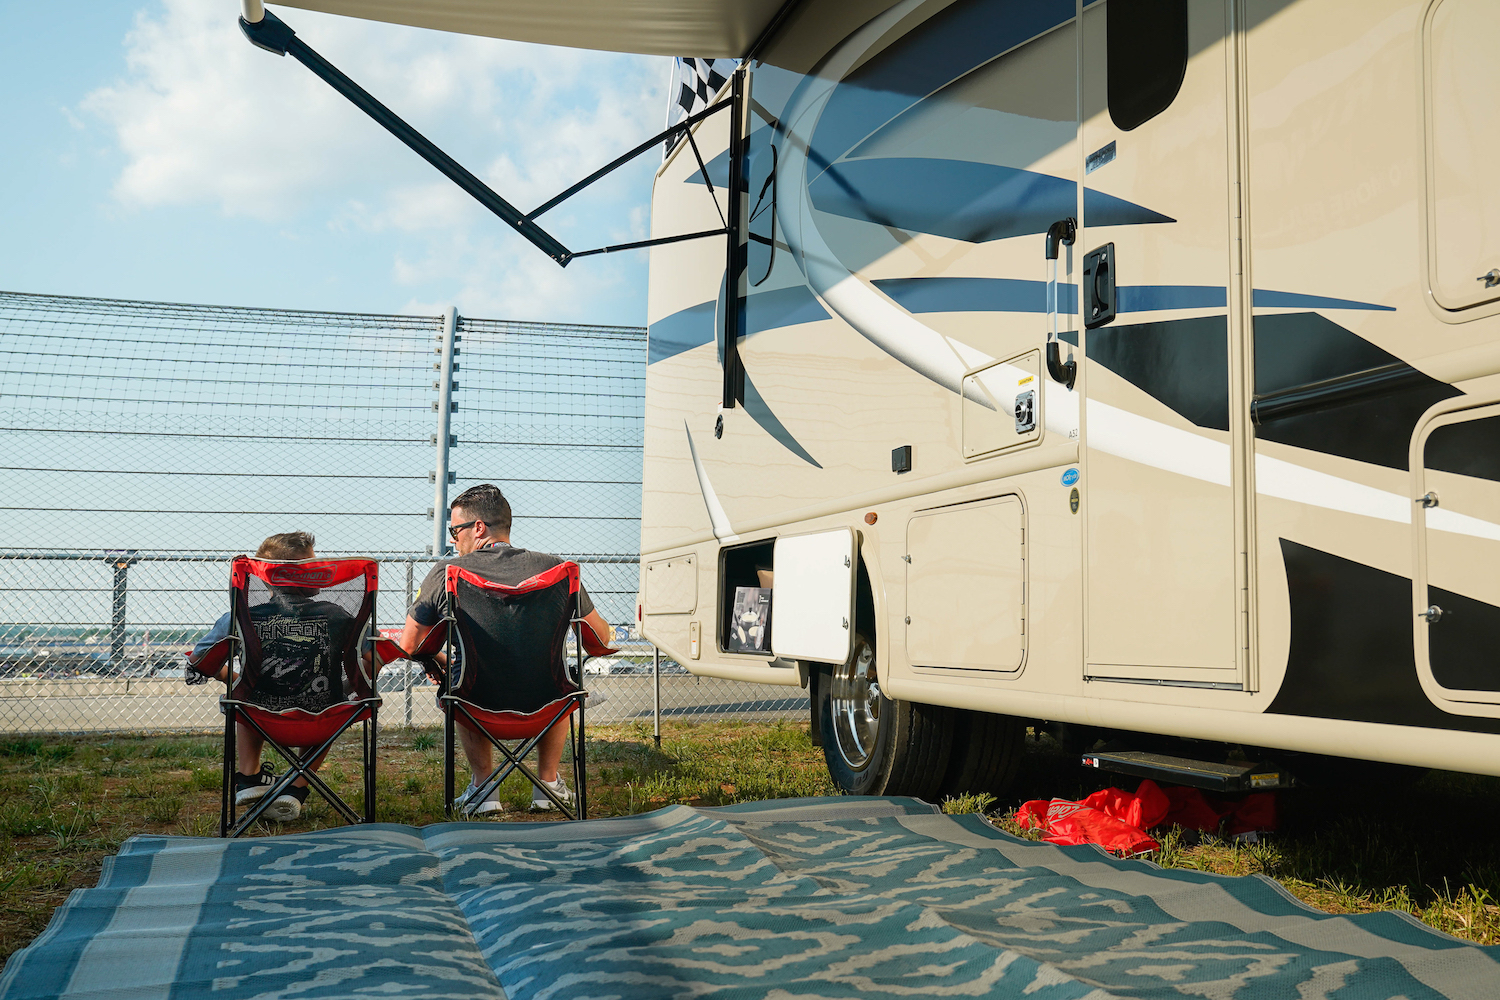 father and son rv camping at NASCAR